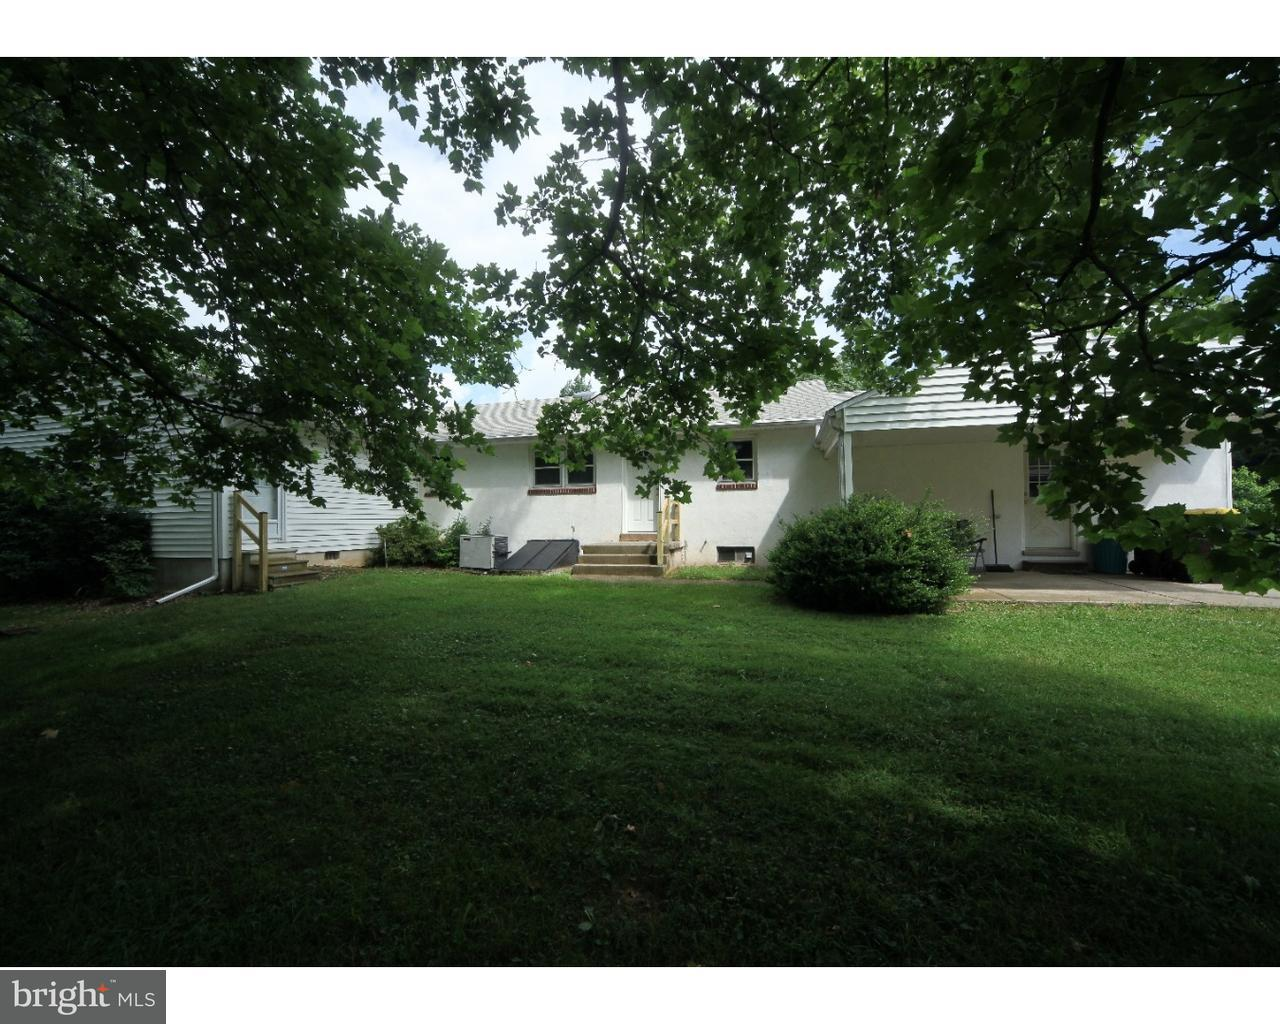 285 EDISON FURLONG RD, DOYLESTOWN - Listed at $429,000, DOYLESTOWN